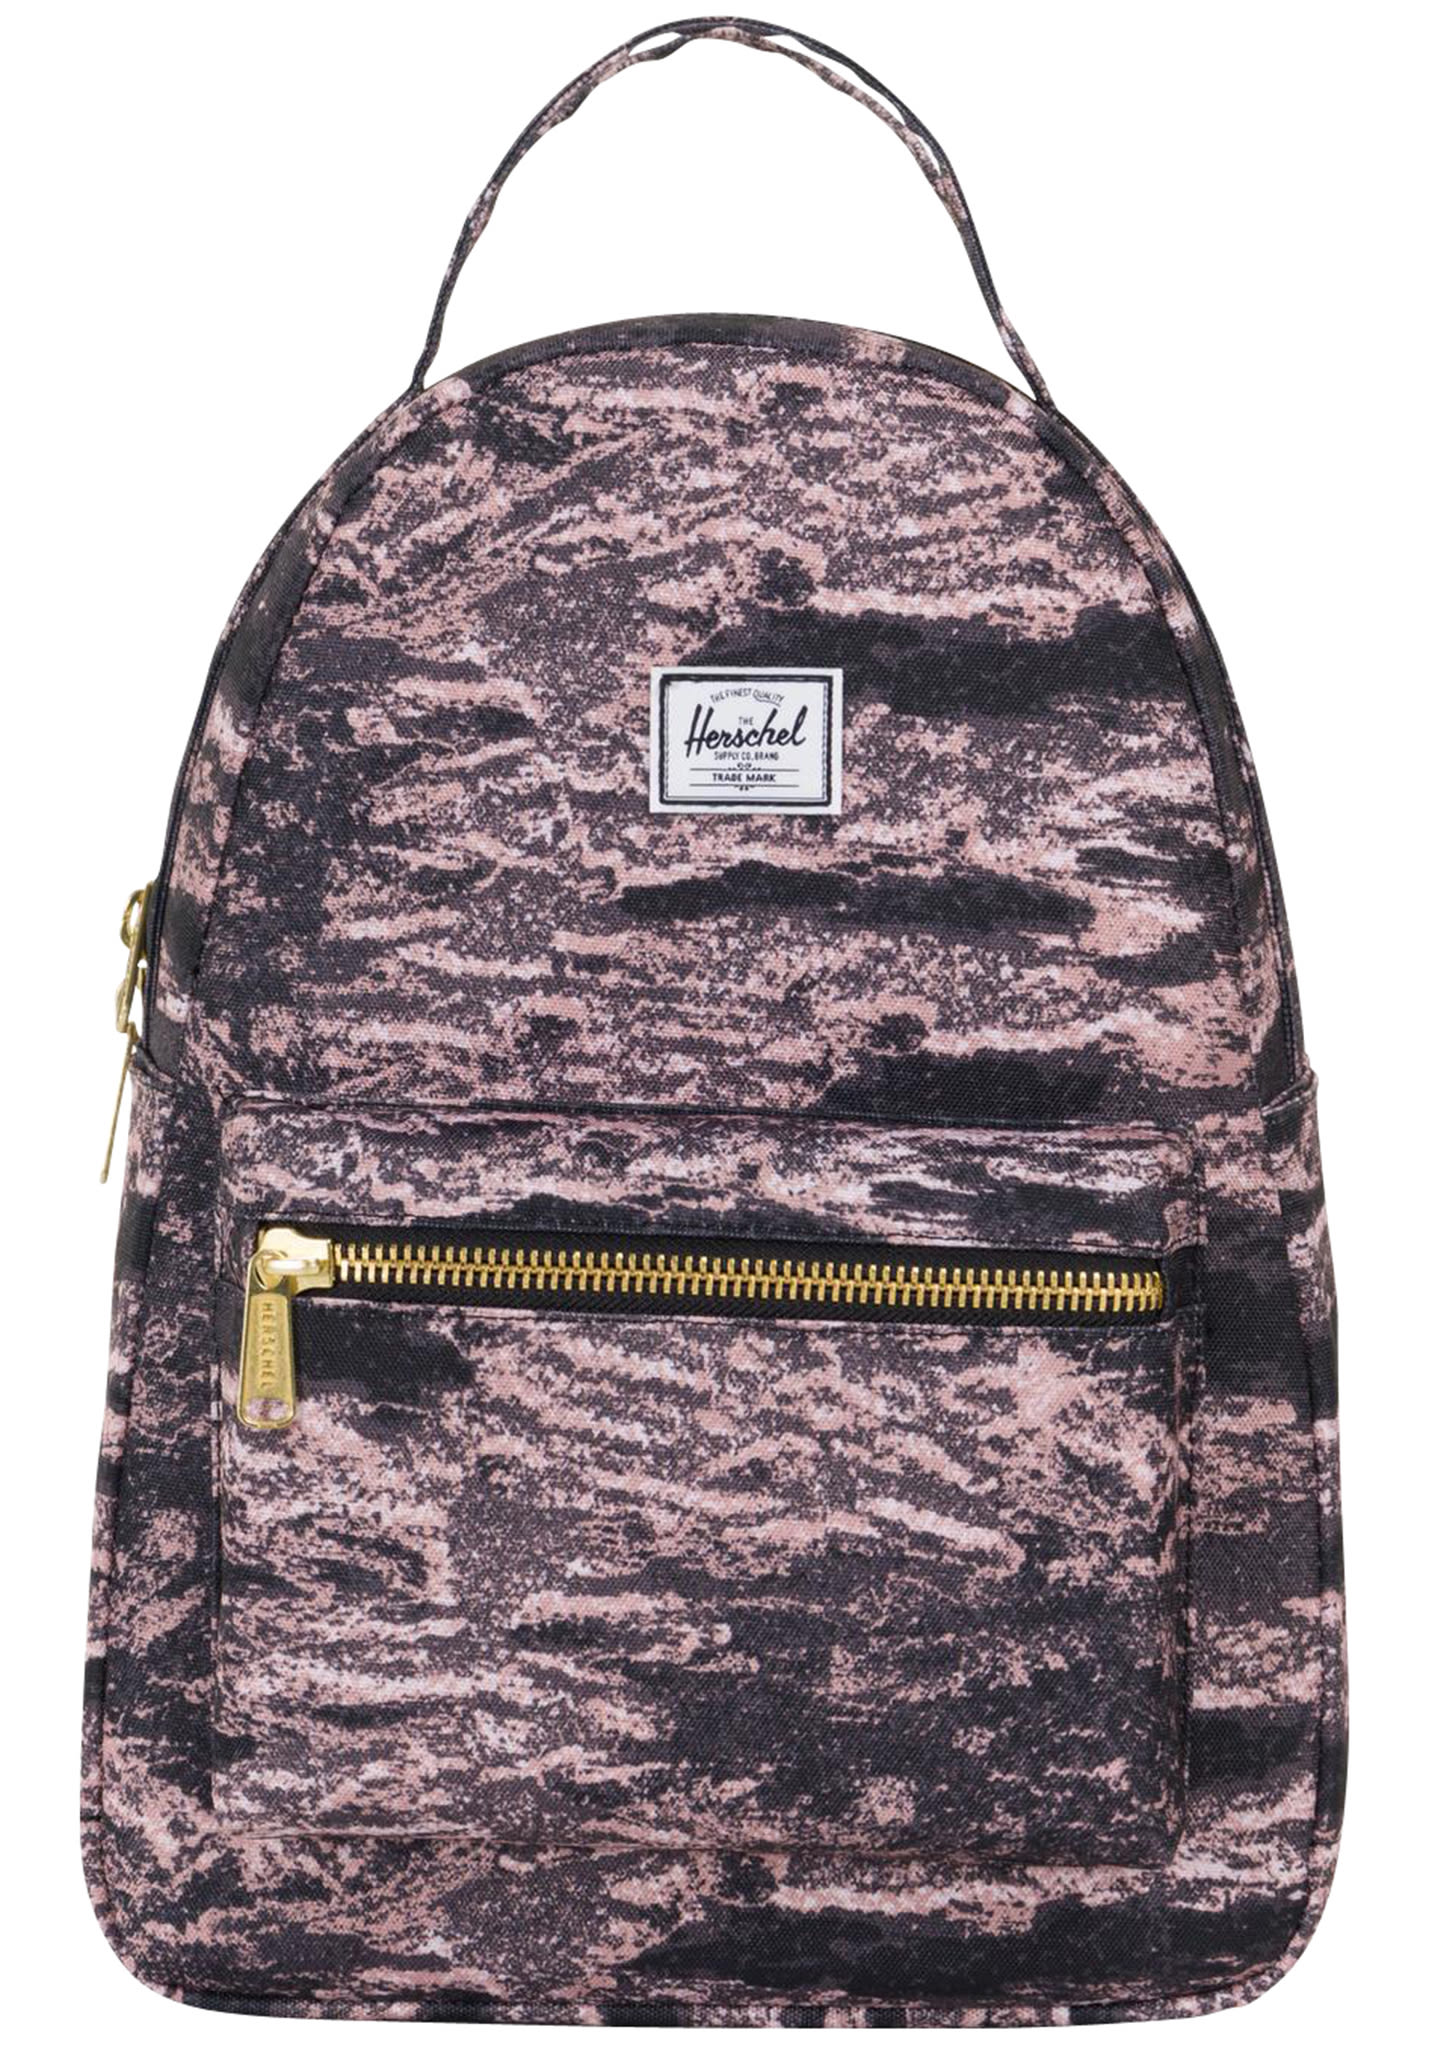 db7a63750f287 HERSCHEL SUPPLY CO Nova Small 14L - Rucksack für Damen - Pink - Planet  Sports